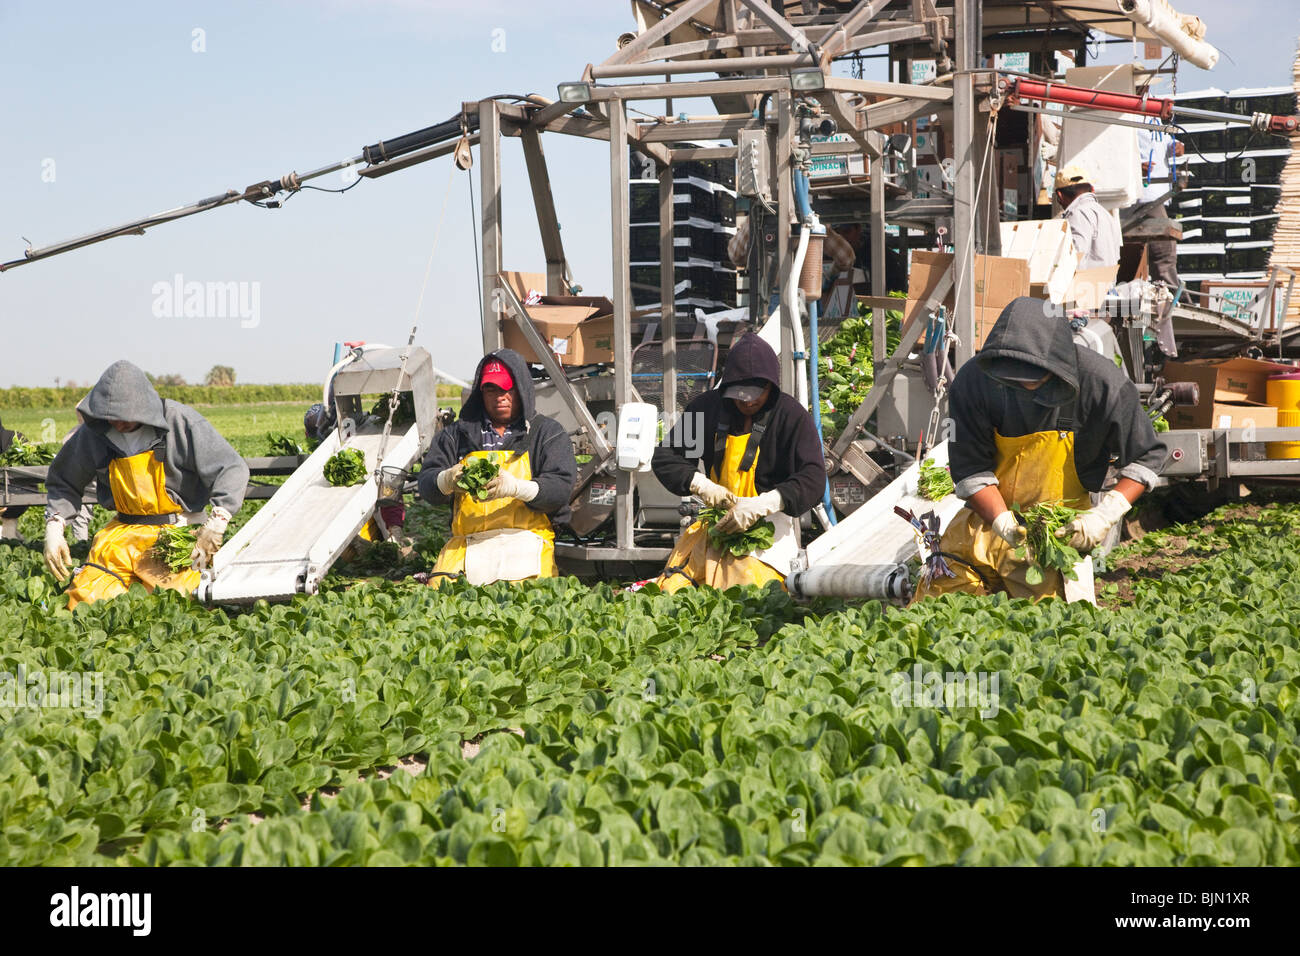 Spinach 'Spinacea oleracea' harvest. - Stock Image